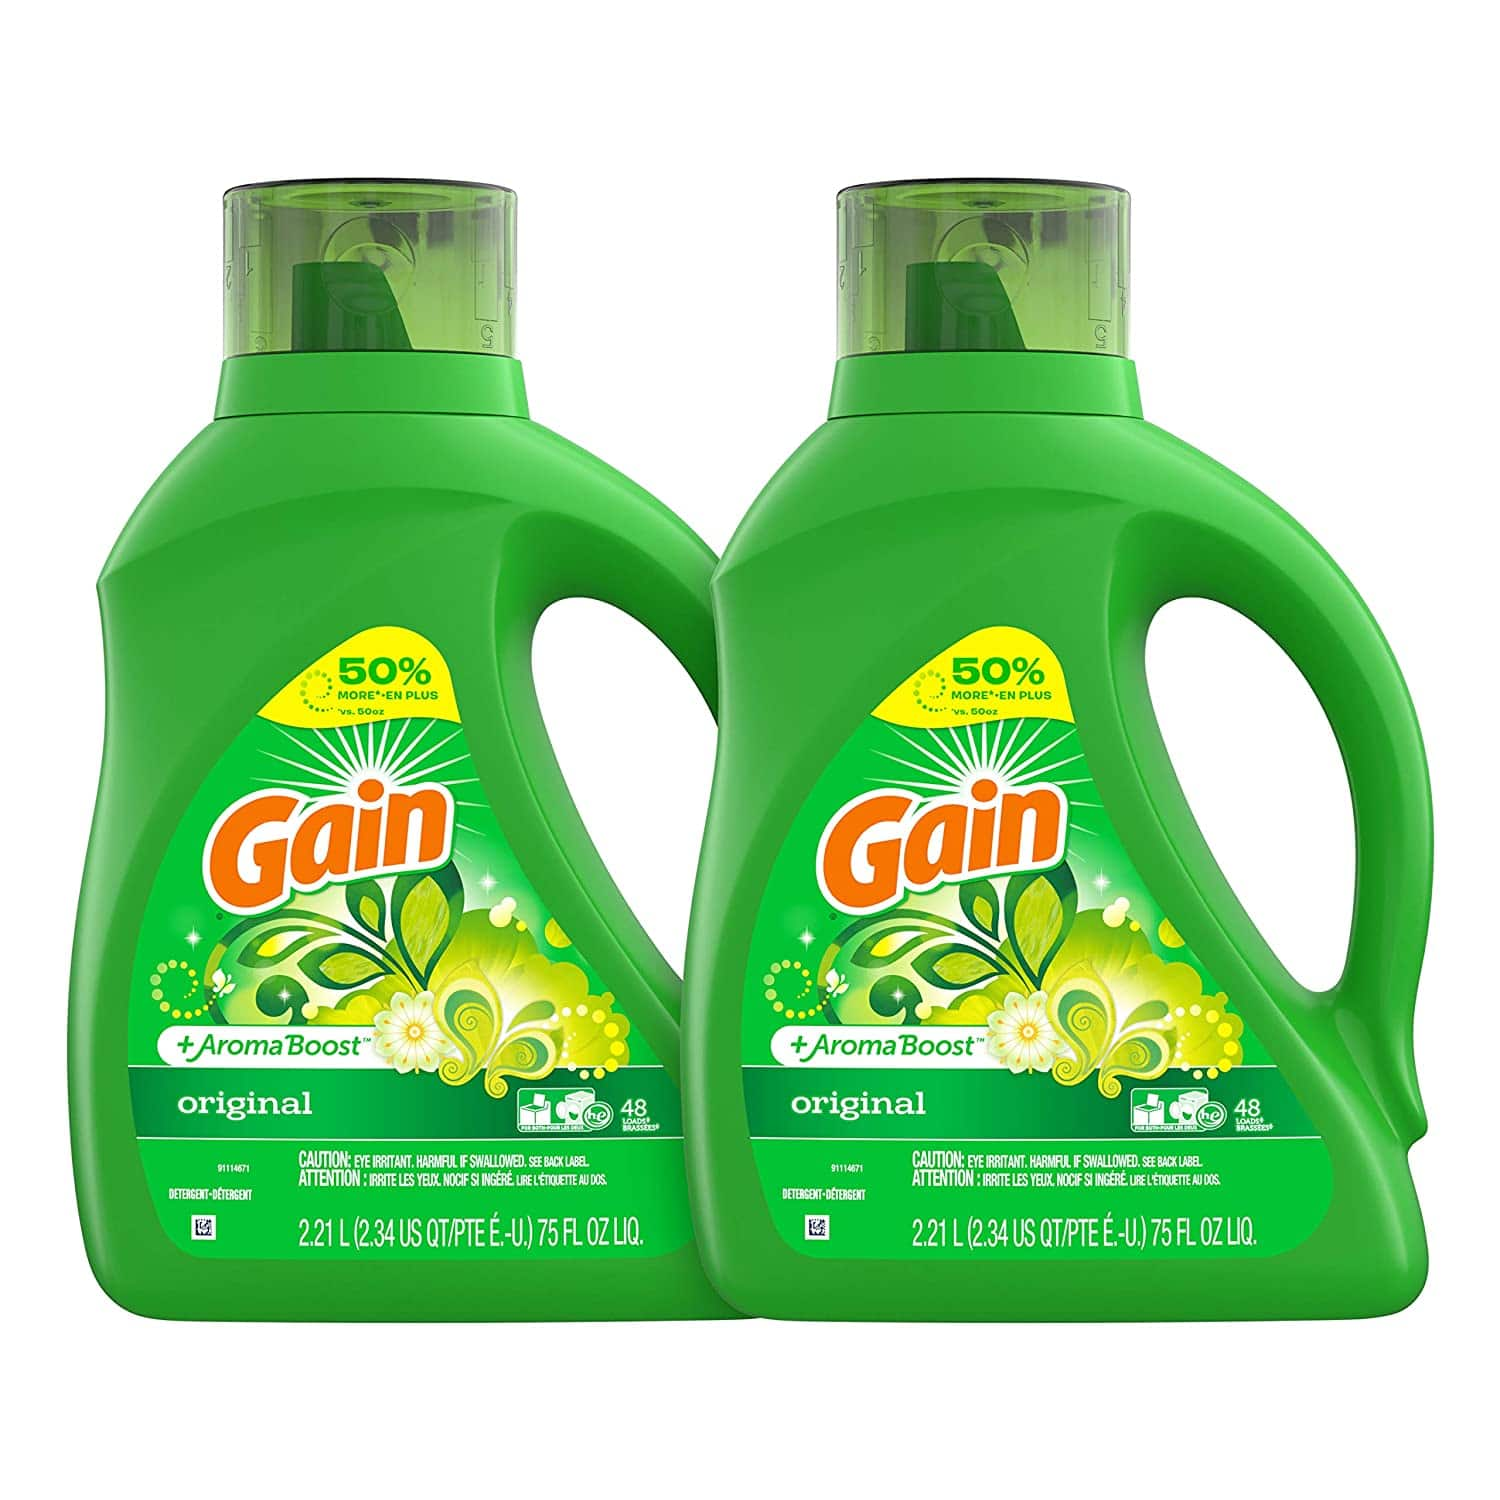 2-Count 75oz Gain Laundry Detergent Liquid Plus Aroma Boost (Original)